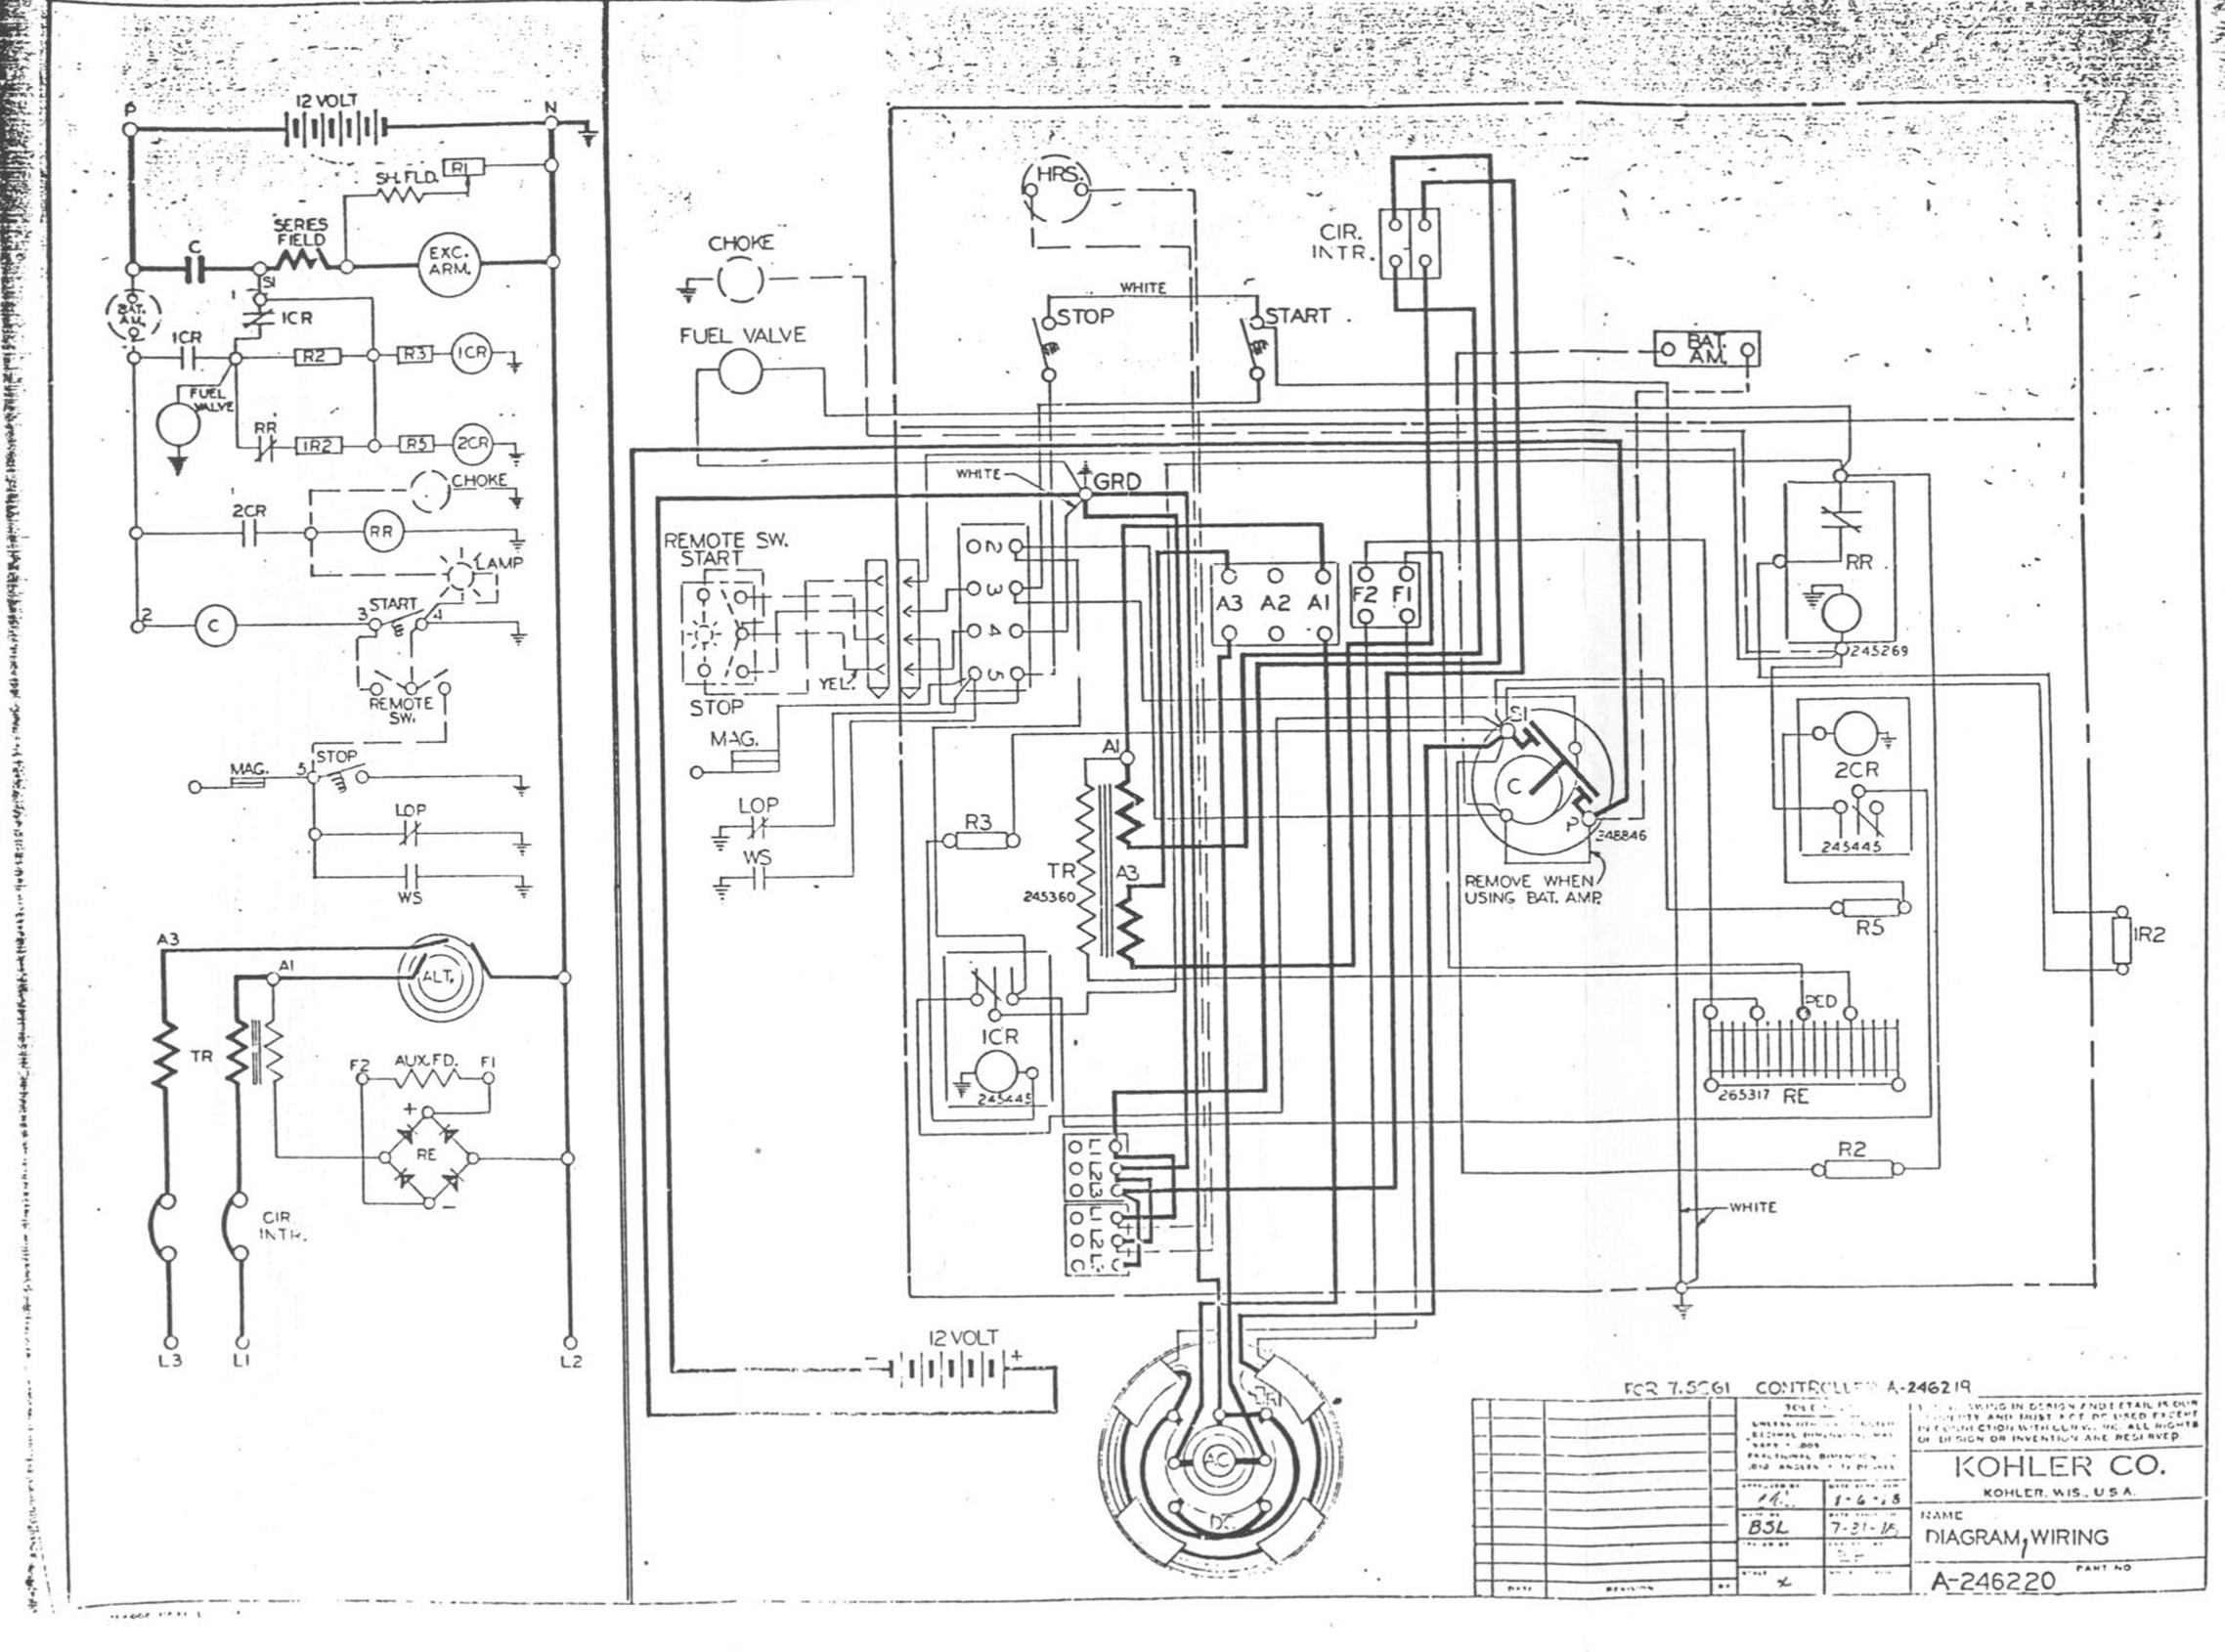 CCD84 Kohler Generator Wiring Schematics | Digital Resources on kohler kt17qs diagram, kohler command wiring diagrams, kohler generator special tools, kohler engine electrical diagram, lifan generators wiring diagram, kohler engine wiring diagrams, kohler generator schematics, remote spotlight wiring diagram, kohler engine parts diagram, kohler generators start stop, kohler generator fuel tank, decision maker 3 wiring diagram, case 446 tractor wiring diagram, kohler k321 engine diagram s, kohler charging system diagram, kohler key switch wiring diagram, kohler wiring diagram manual, 240v single phase motor wiring diagram, kohler generator parts diagram, case tractor starter wiring diagram,